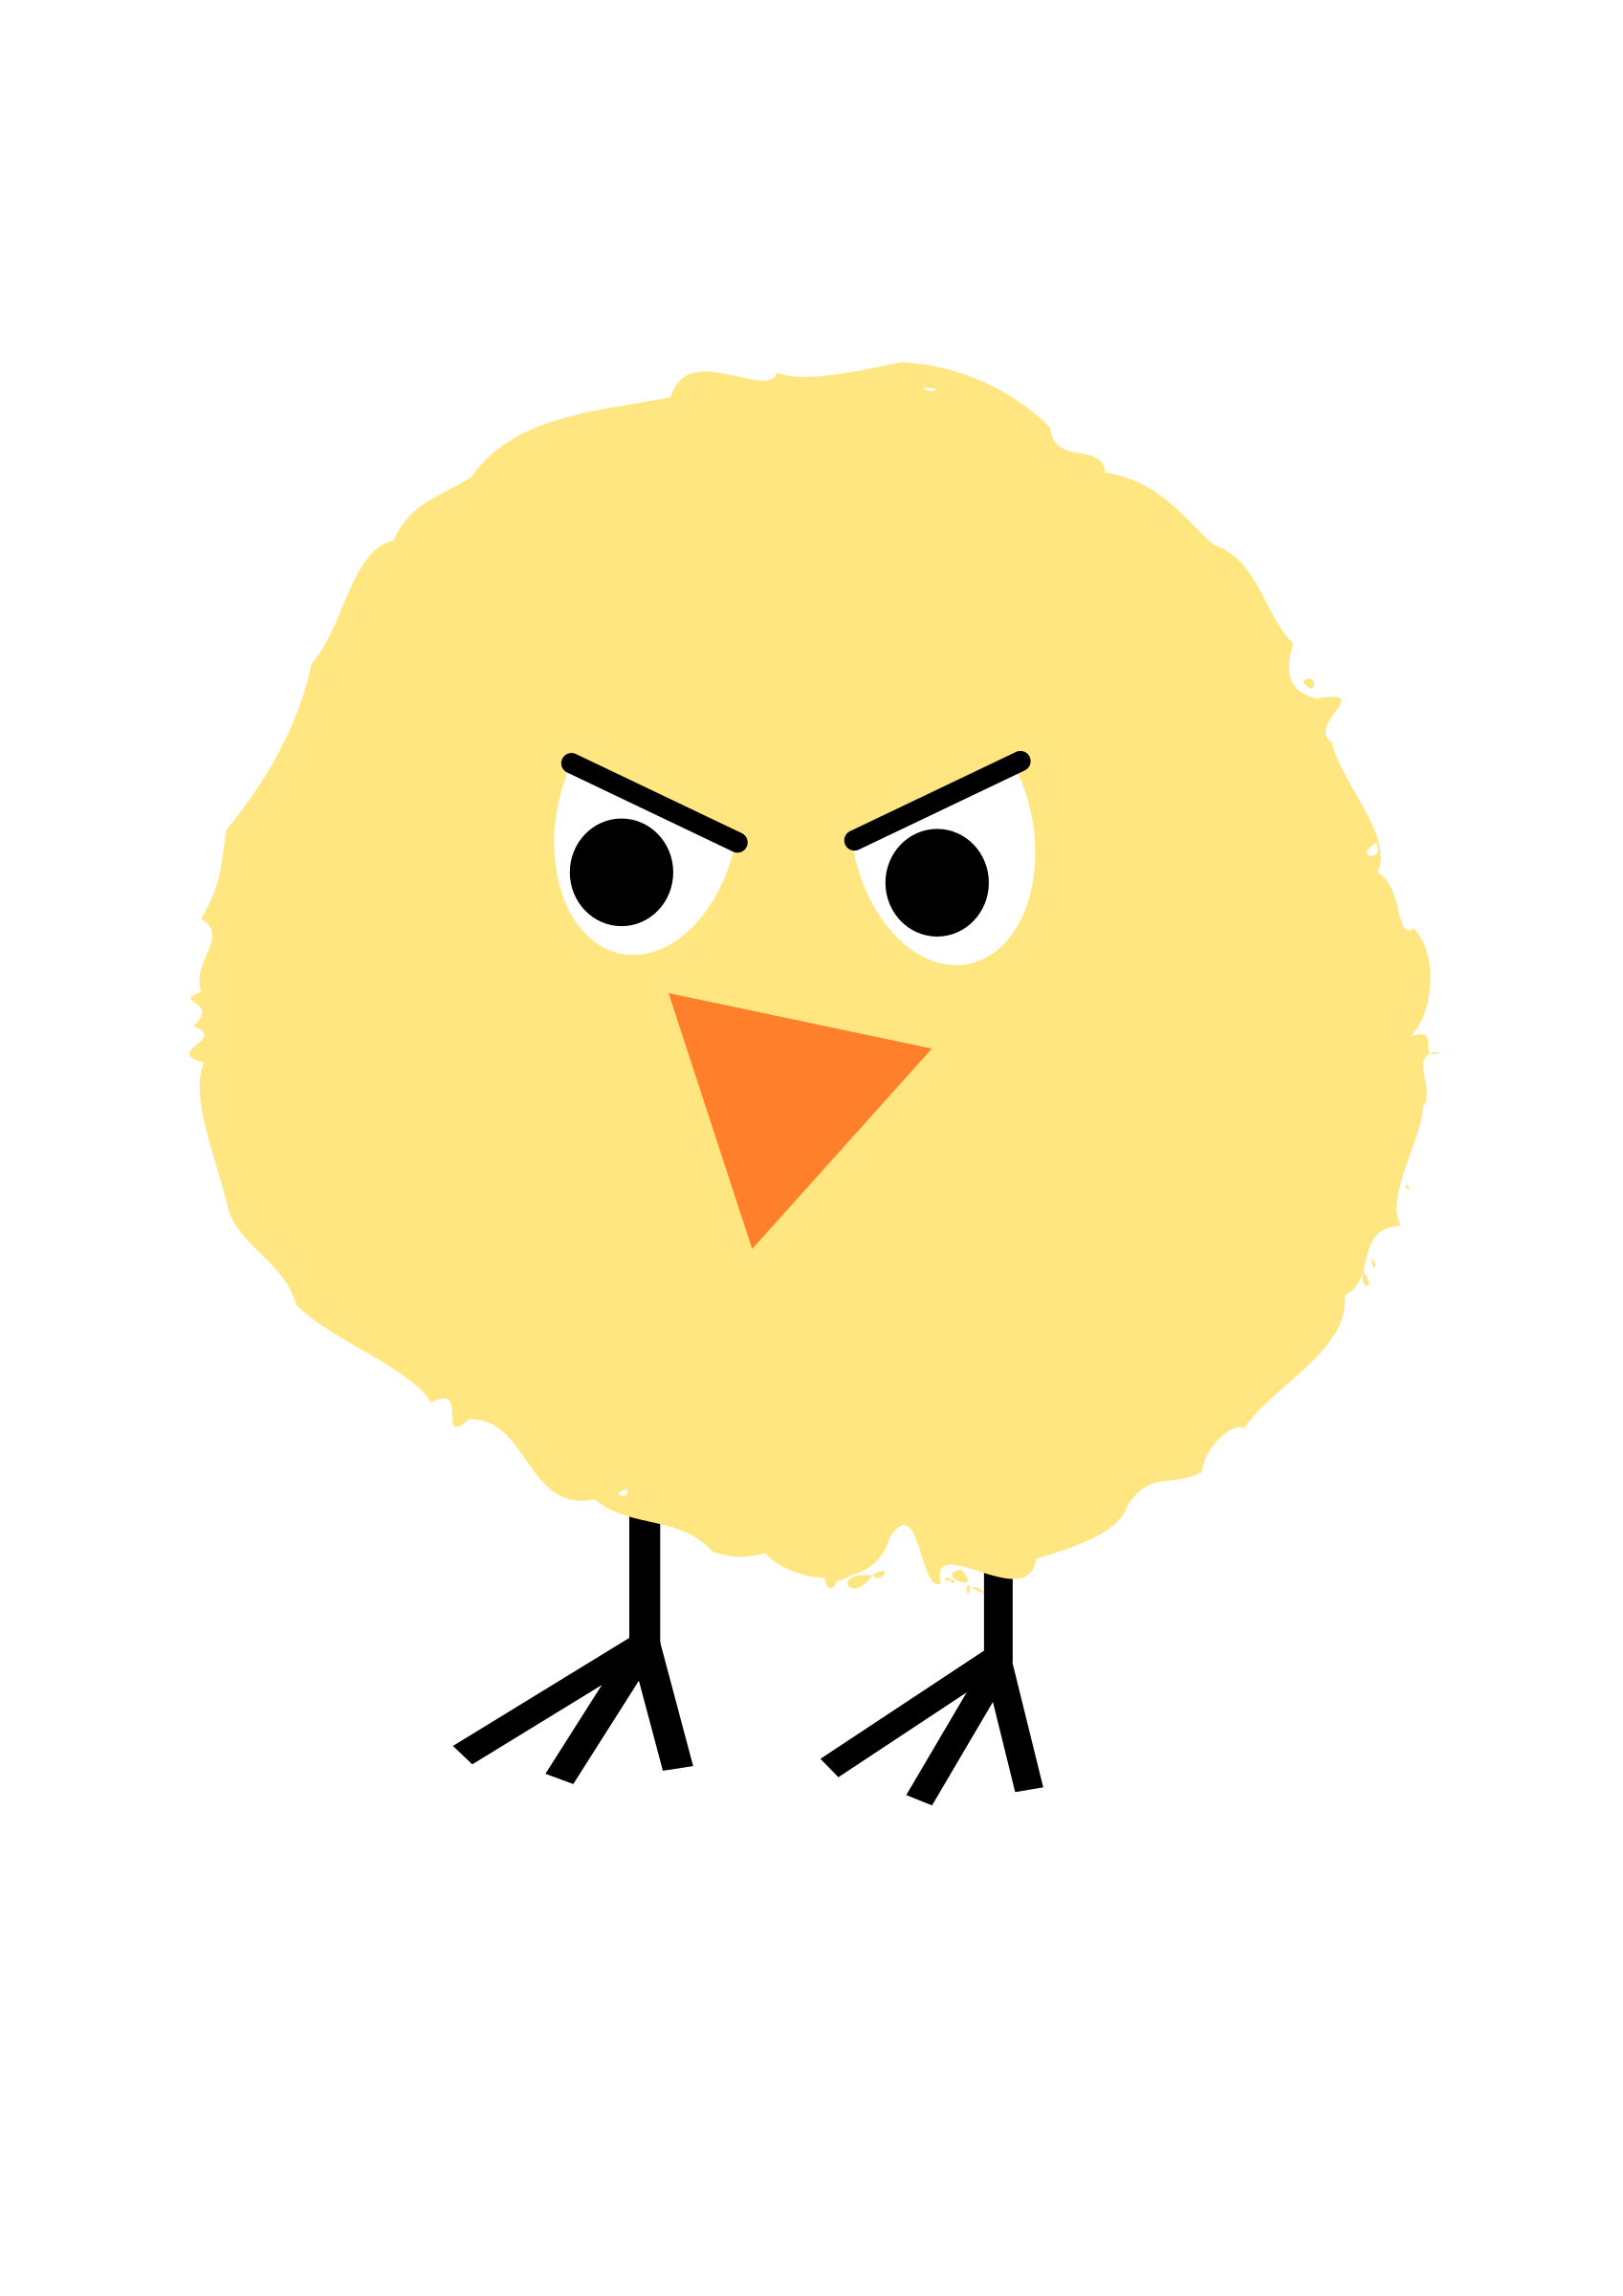 png freeuse download Chick clipart fluffy. Big image png.